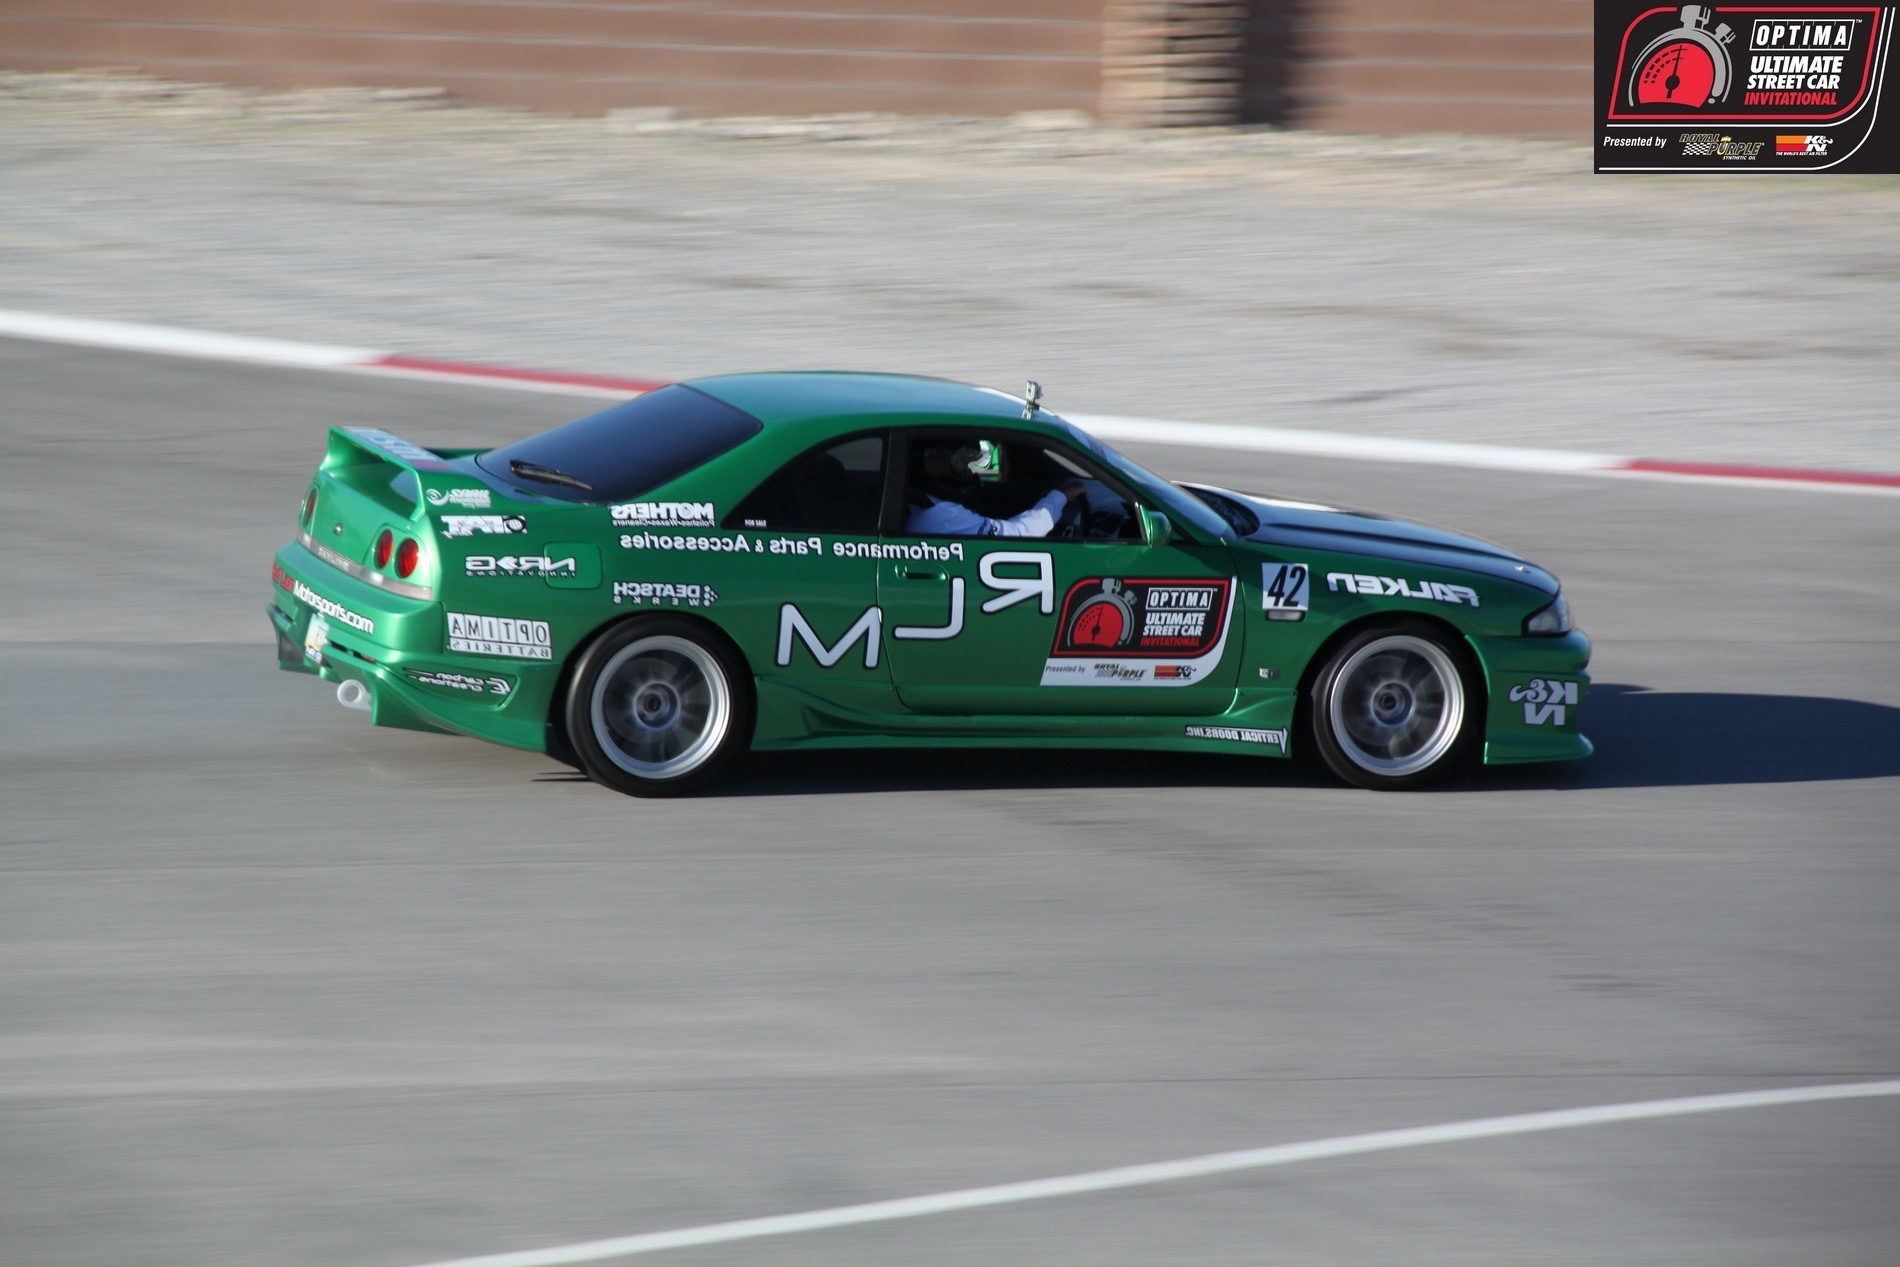 OUSCI Competitor Ben Therrien's 1995 Nissan Skyline